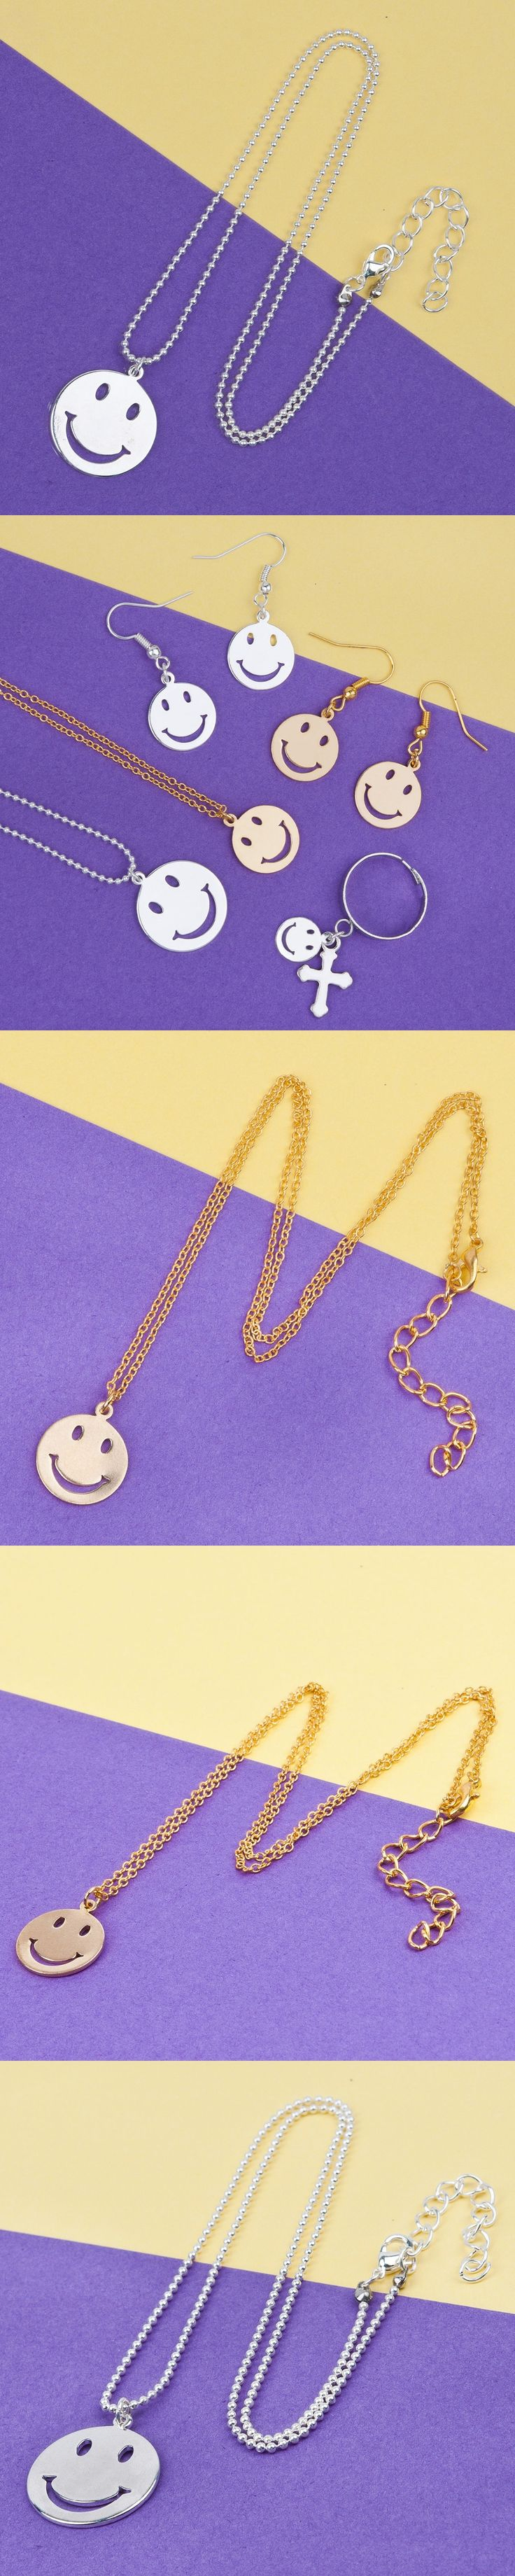 8SEASONS Copper Necklace Silver color / Gold color Round Smiley Emoji Face Pendant Iron Ball Chain 44-44.5cm long 1 Piece